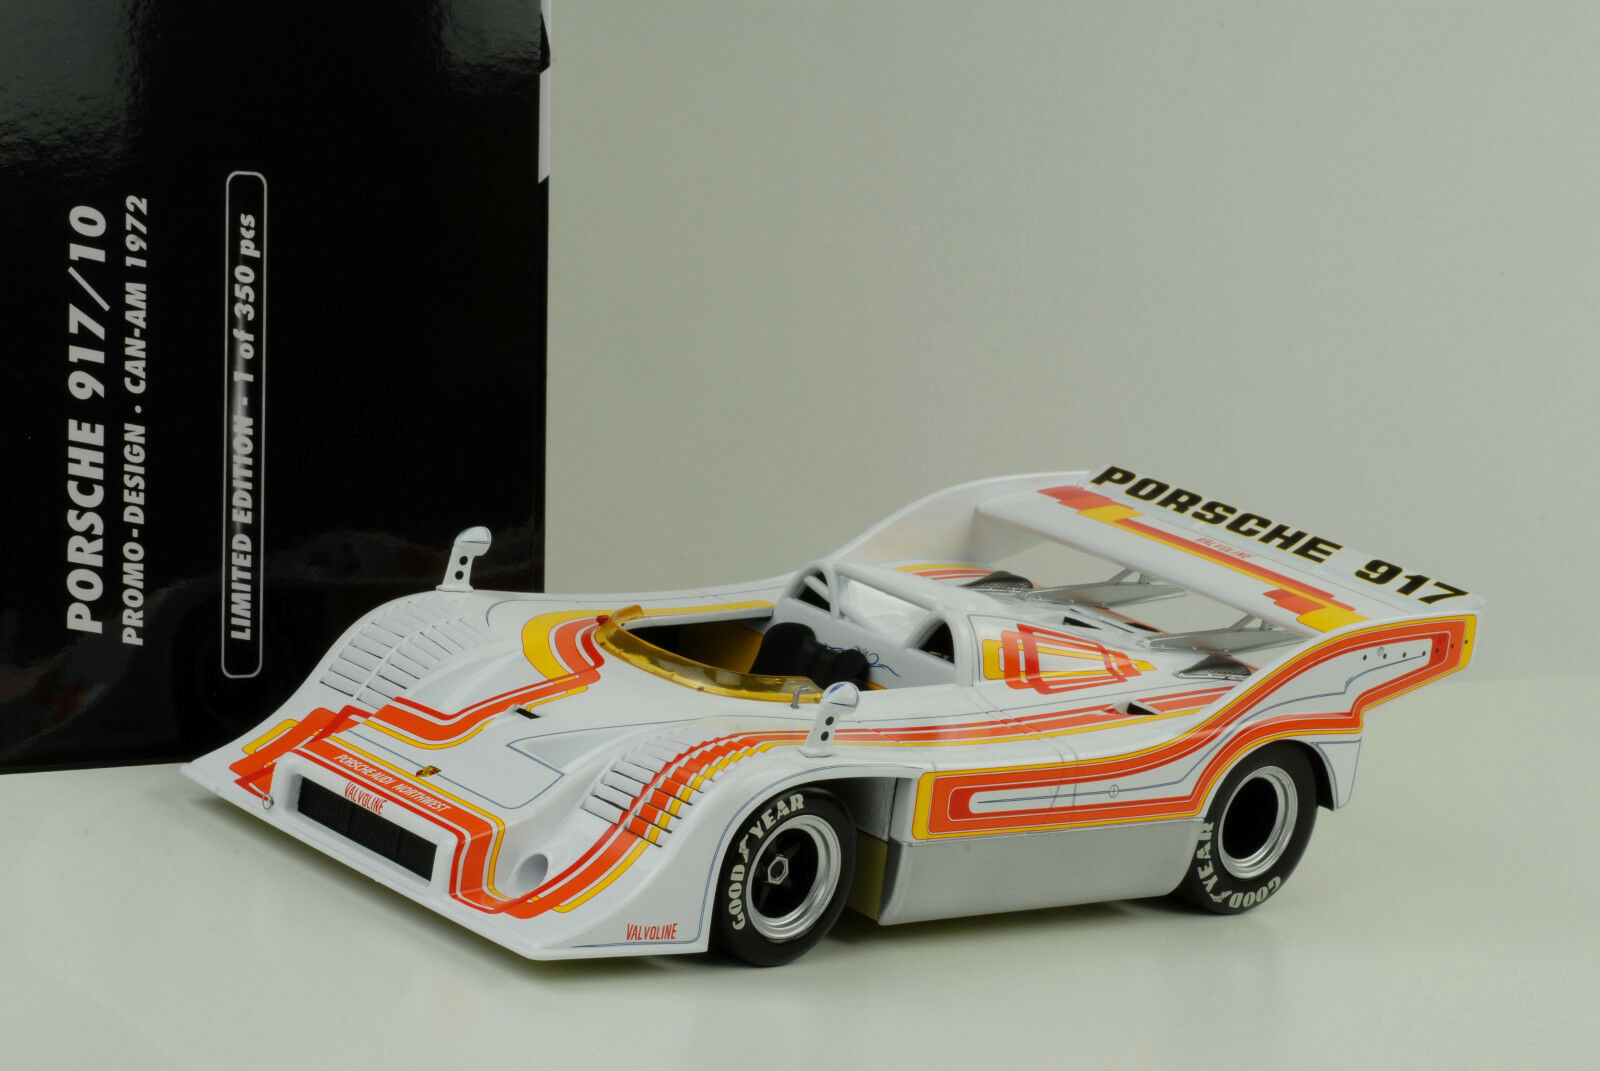 1972 Porsche 917 917 10 Can-Am Interserie Ganador Willi Kauhsen 1 18